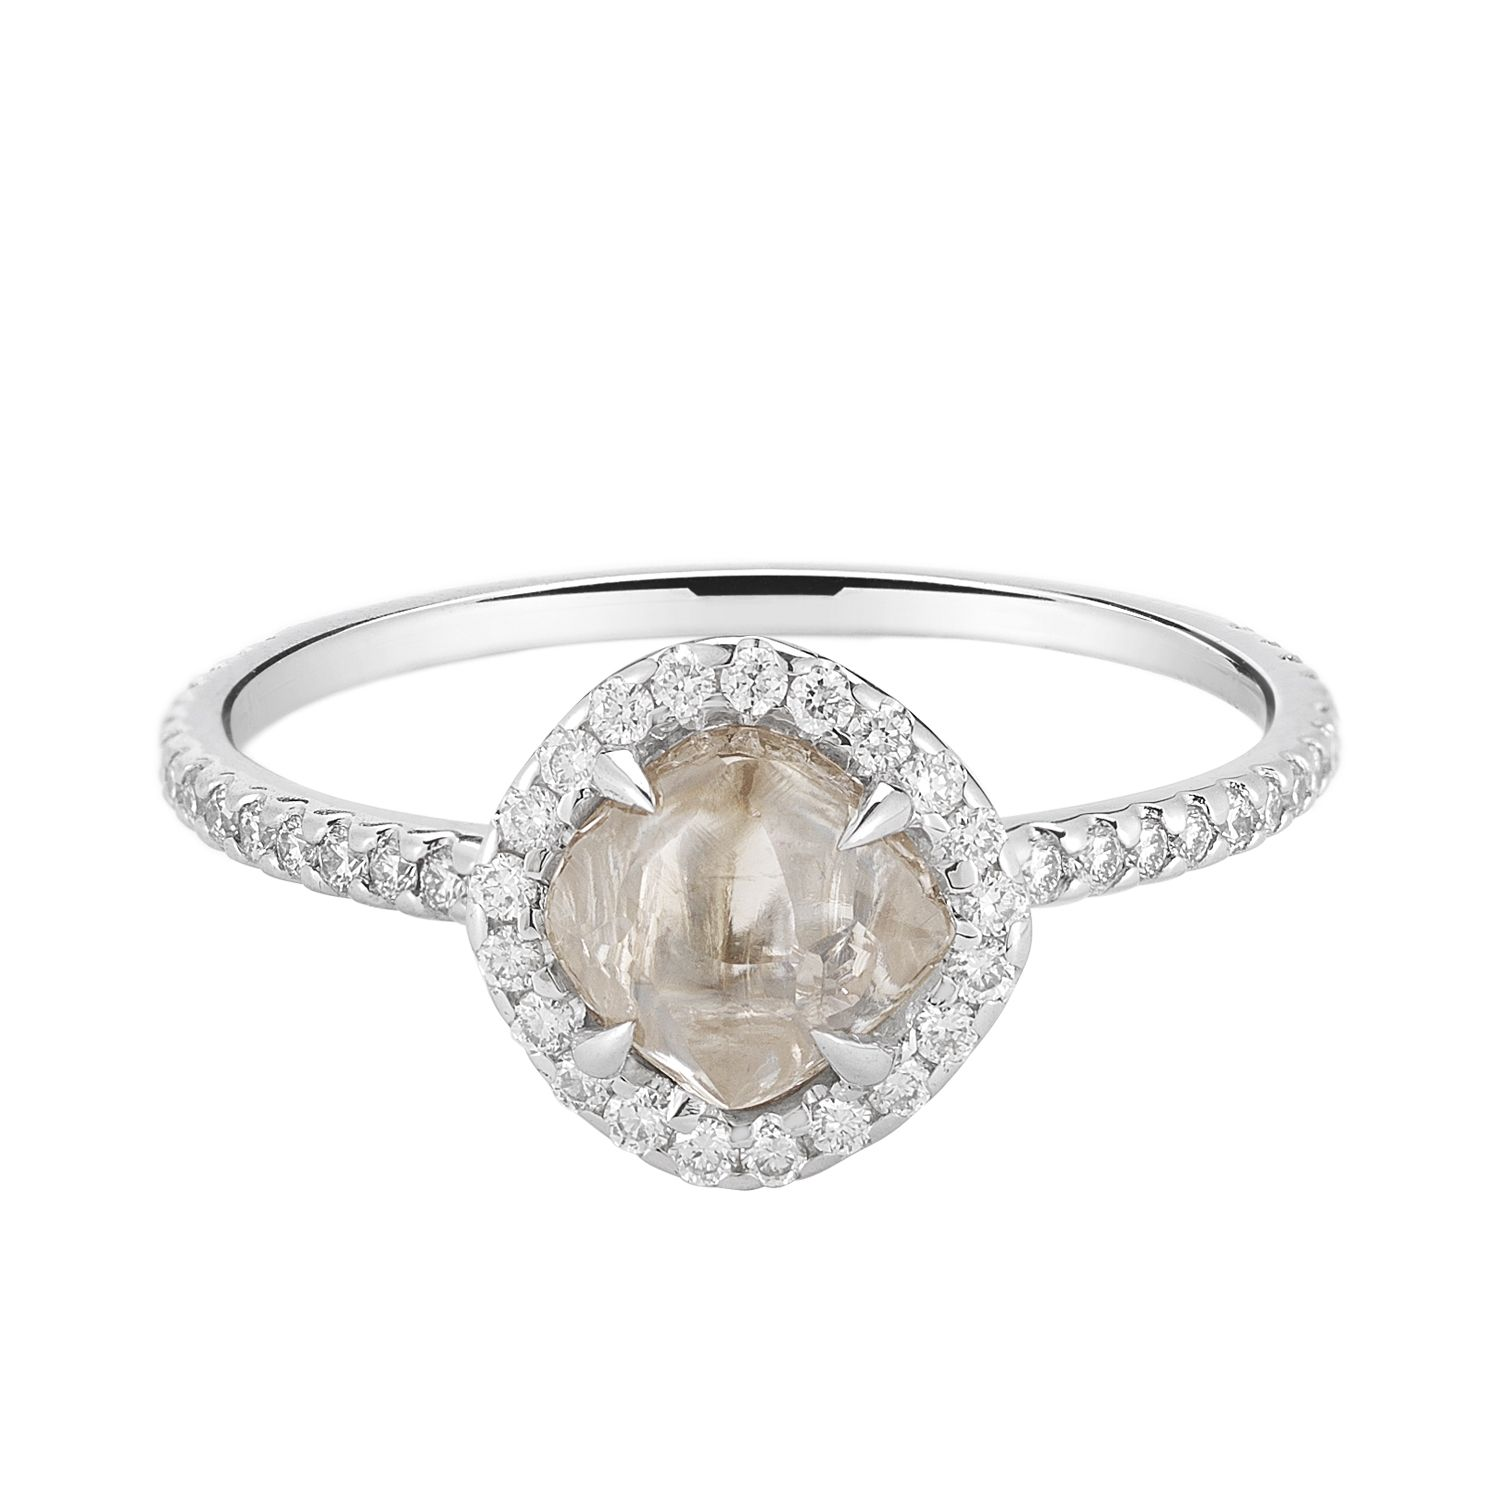 A Matte Rough Diamond makes for a oneofakind bridal